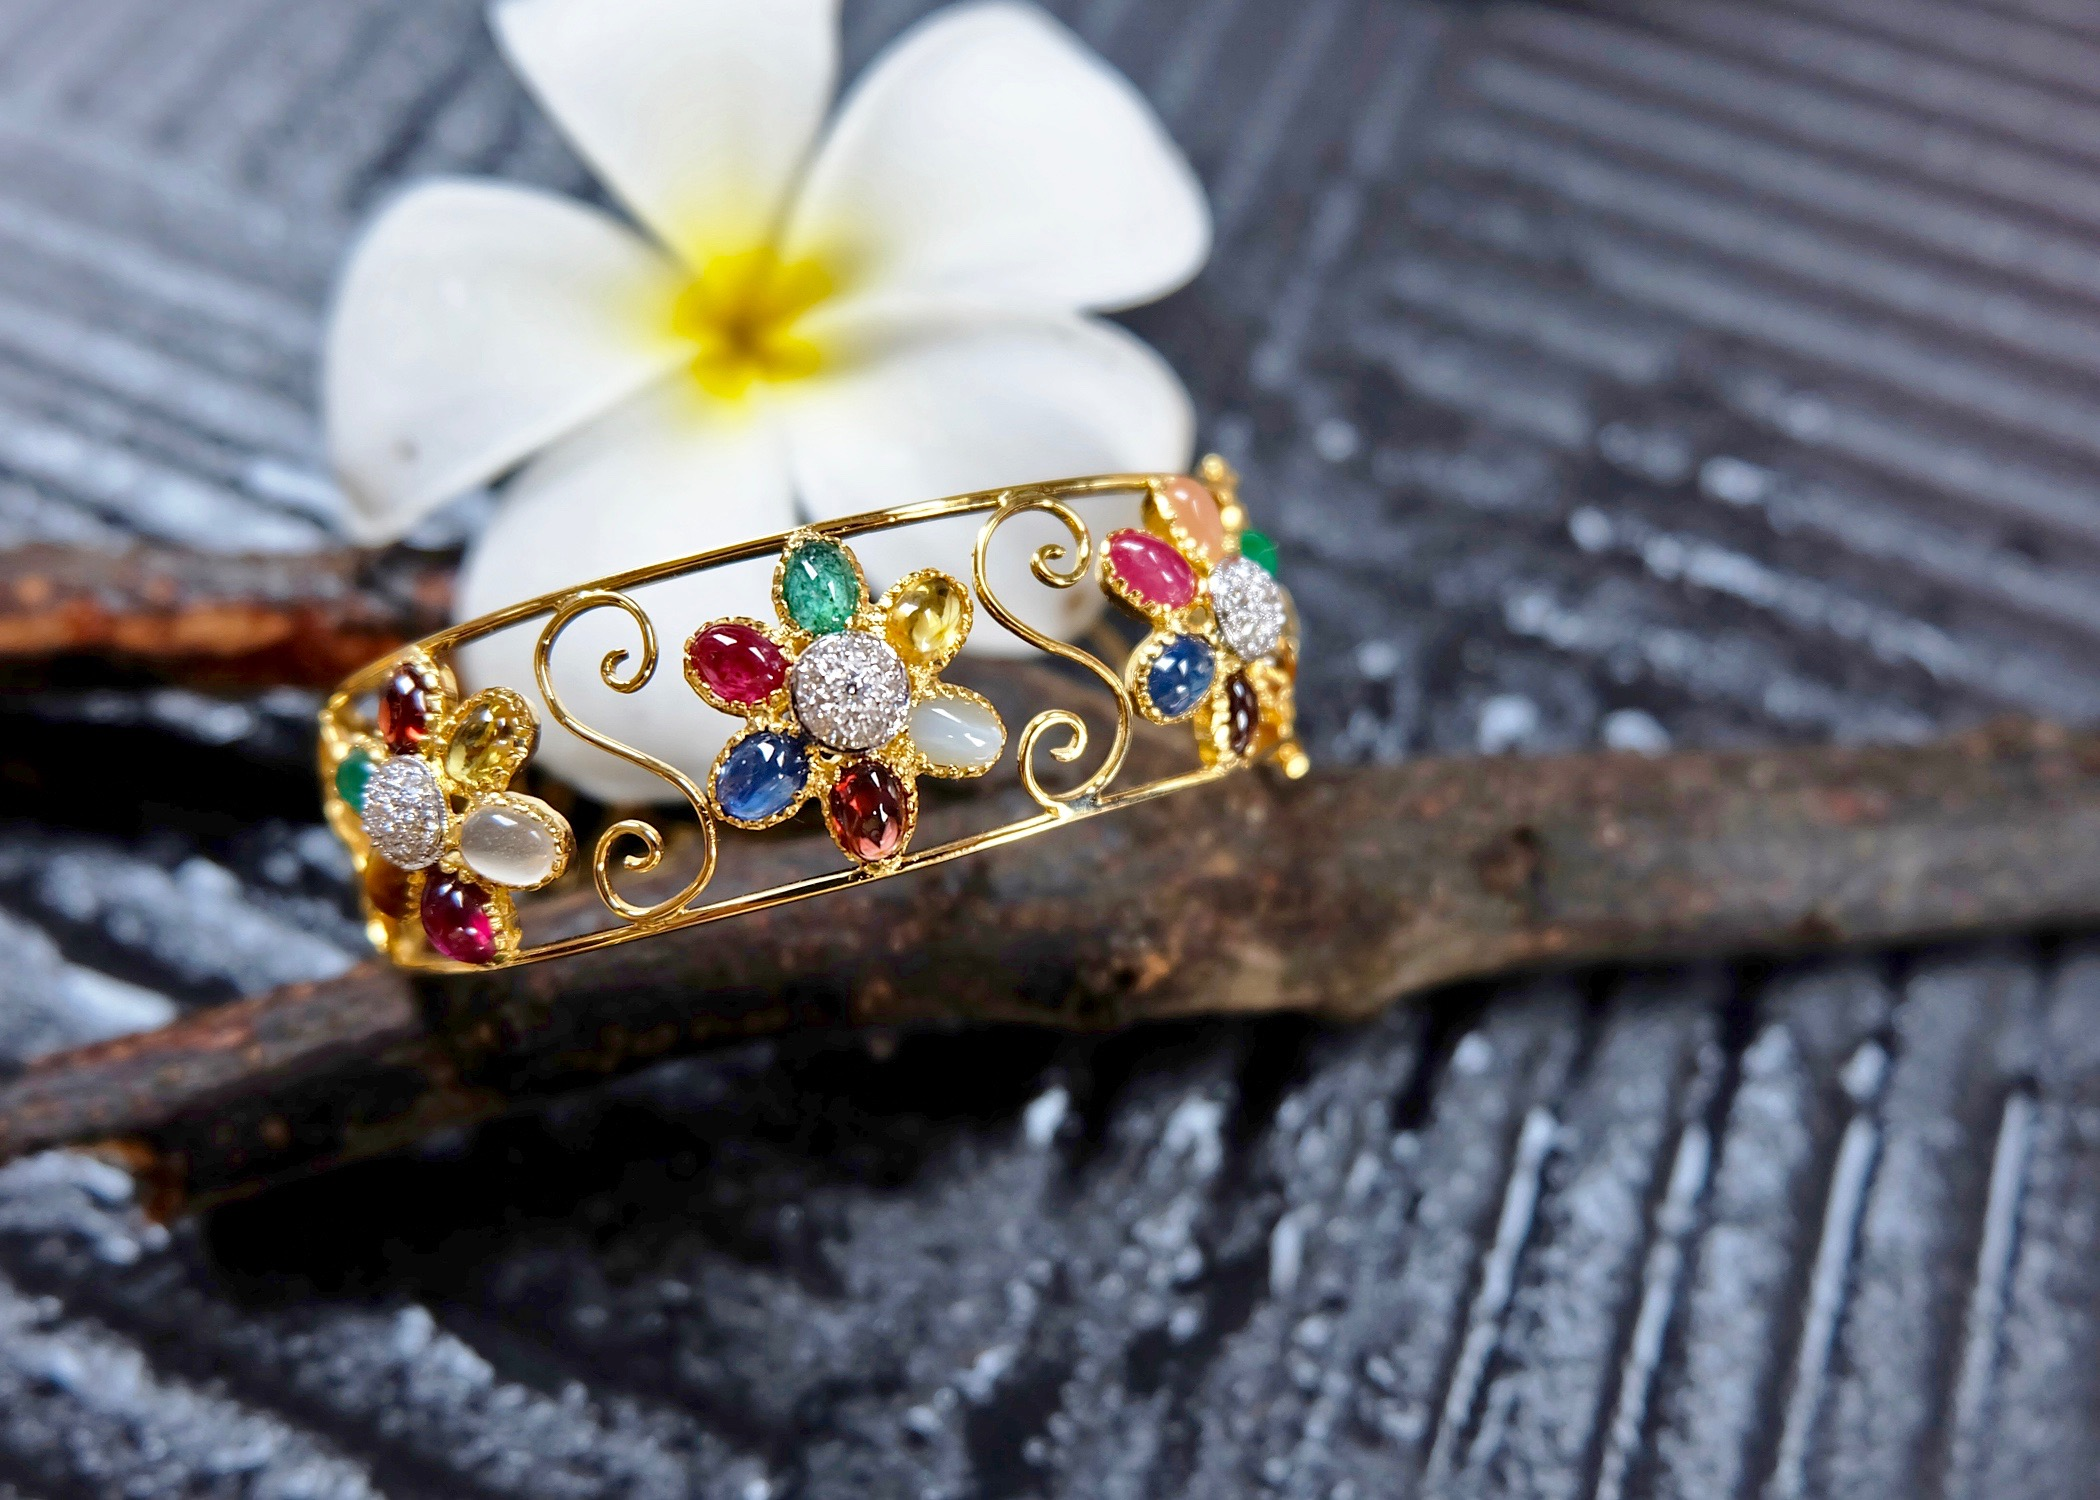 The Color of Gems Flower bracelet